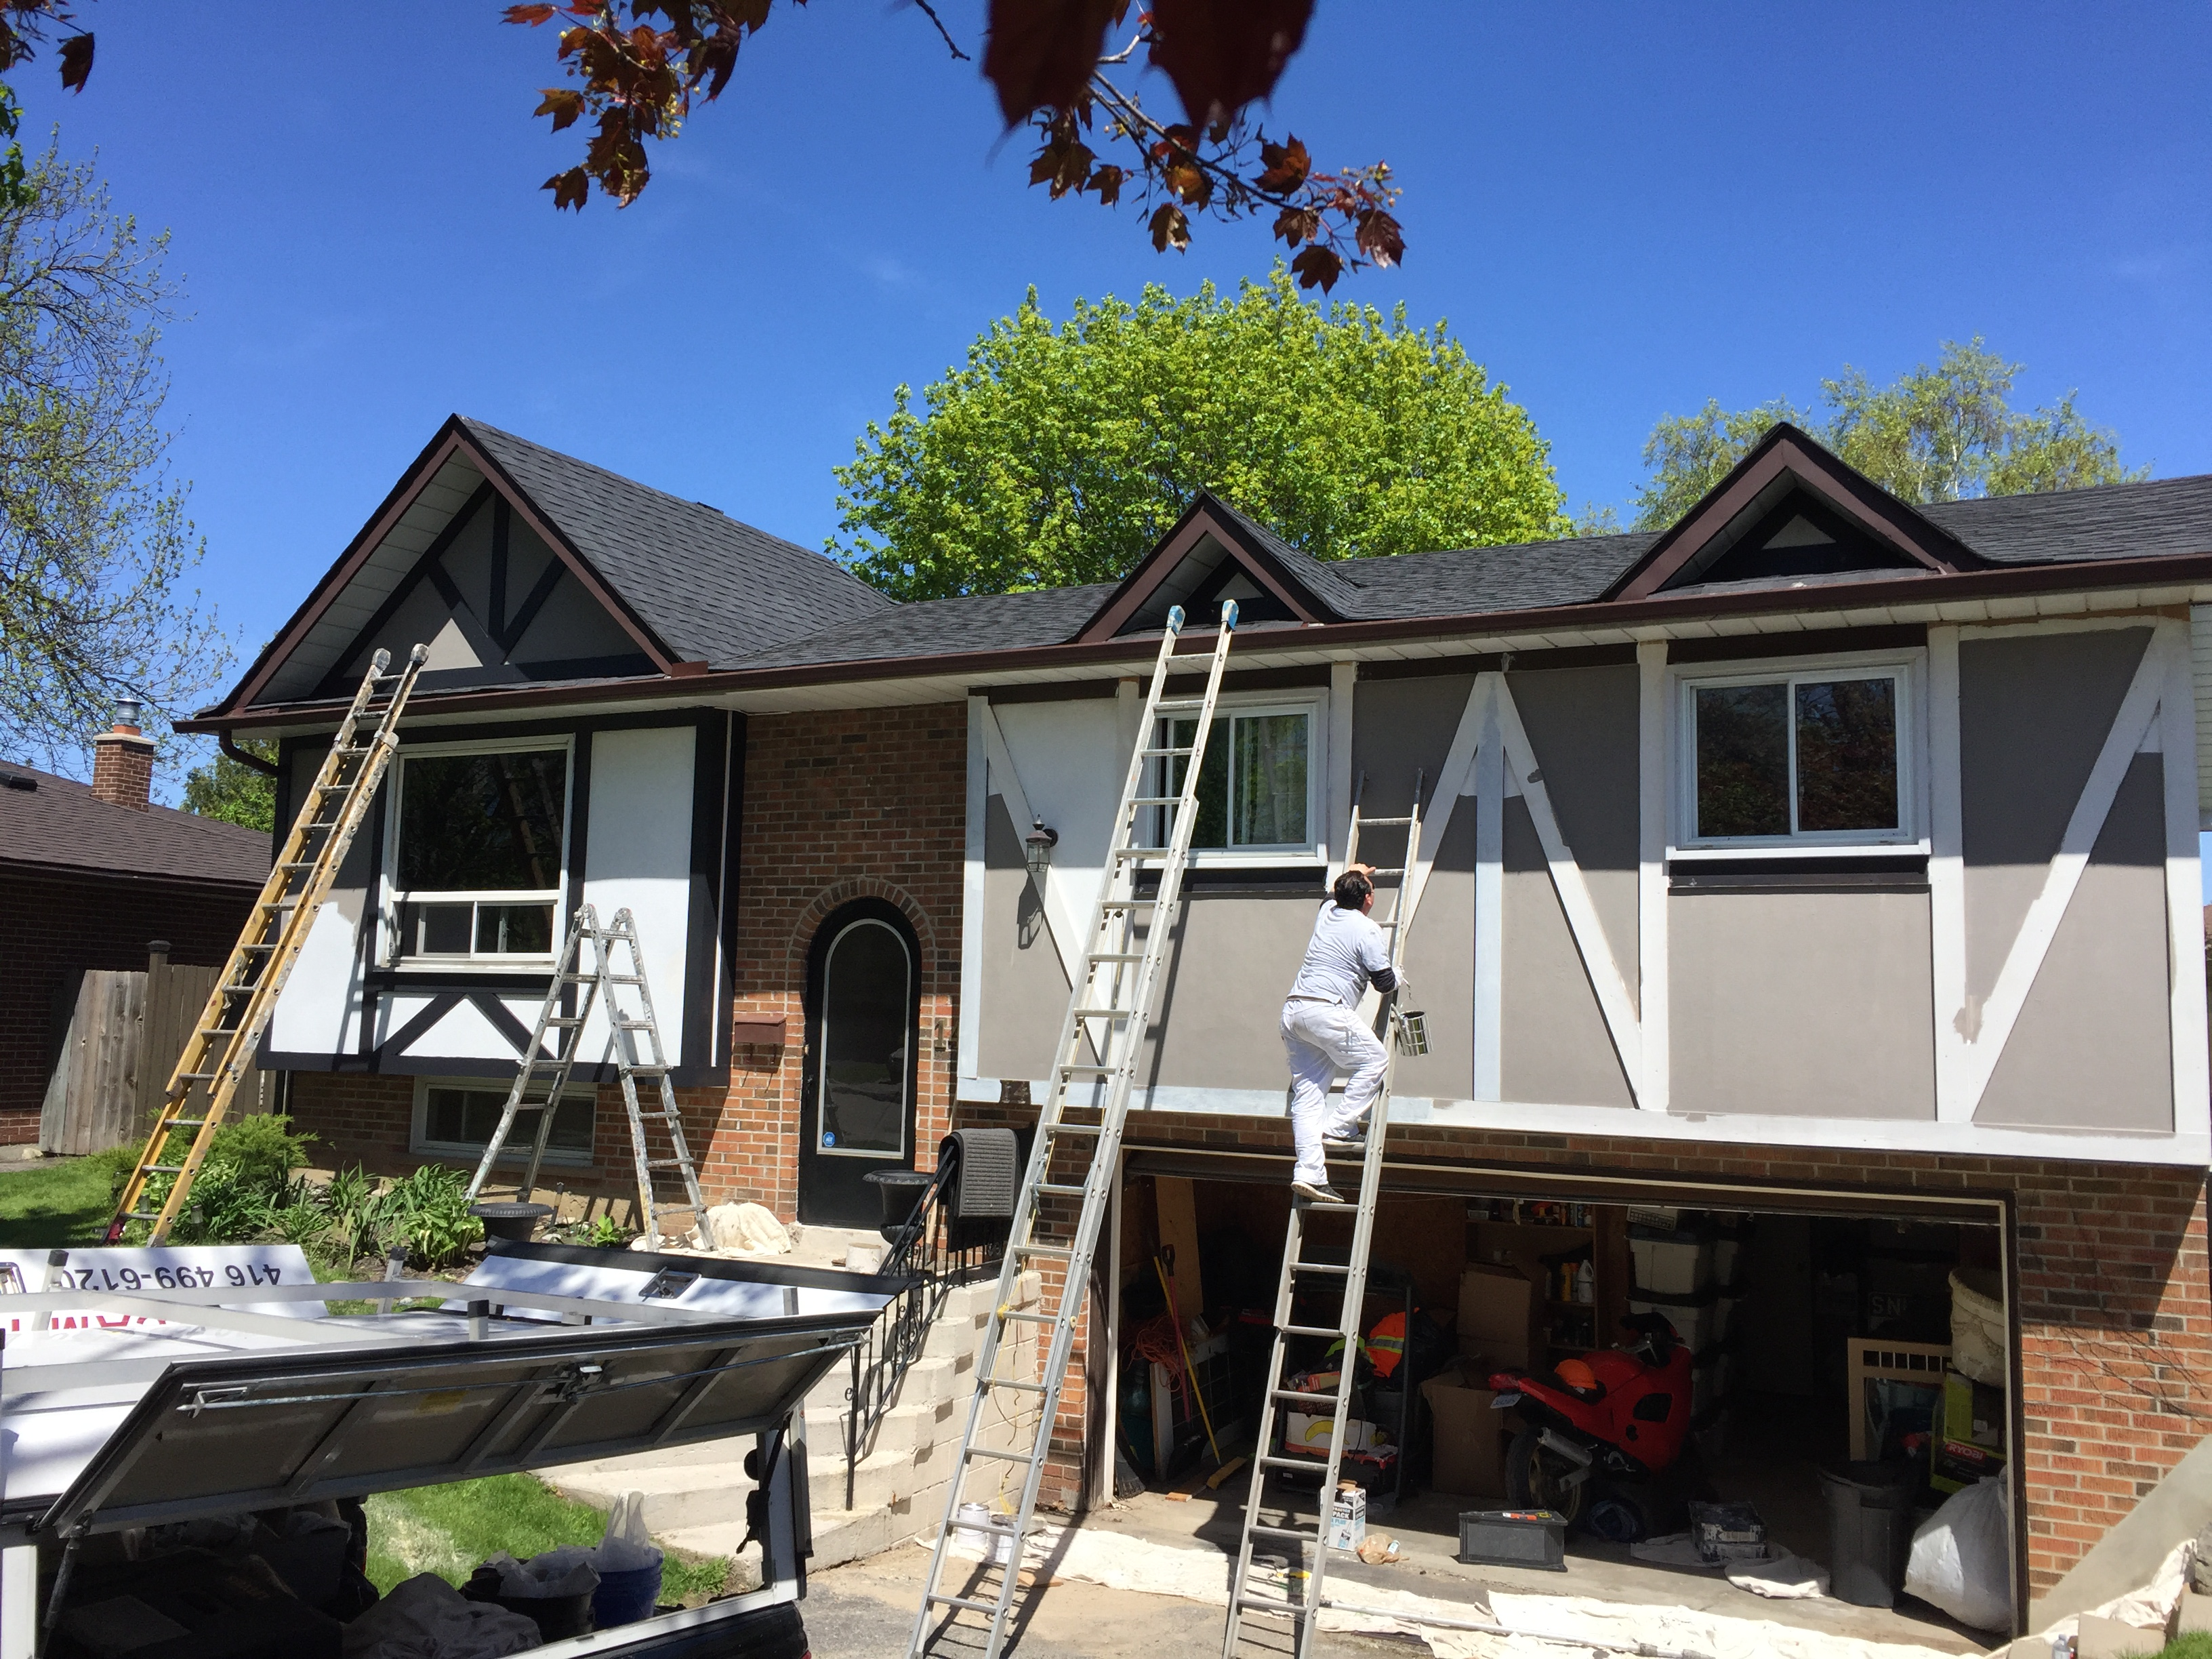 50 Per Hour Toronto House Painting Value